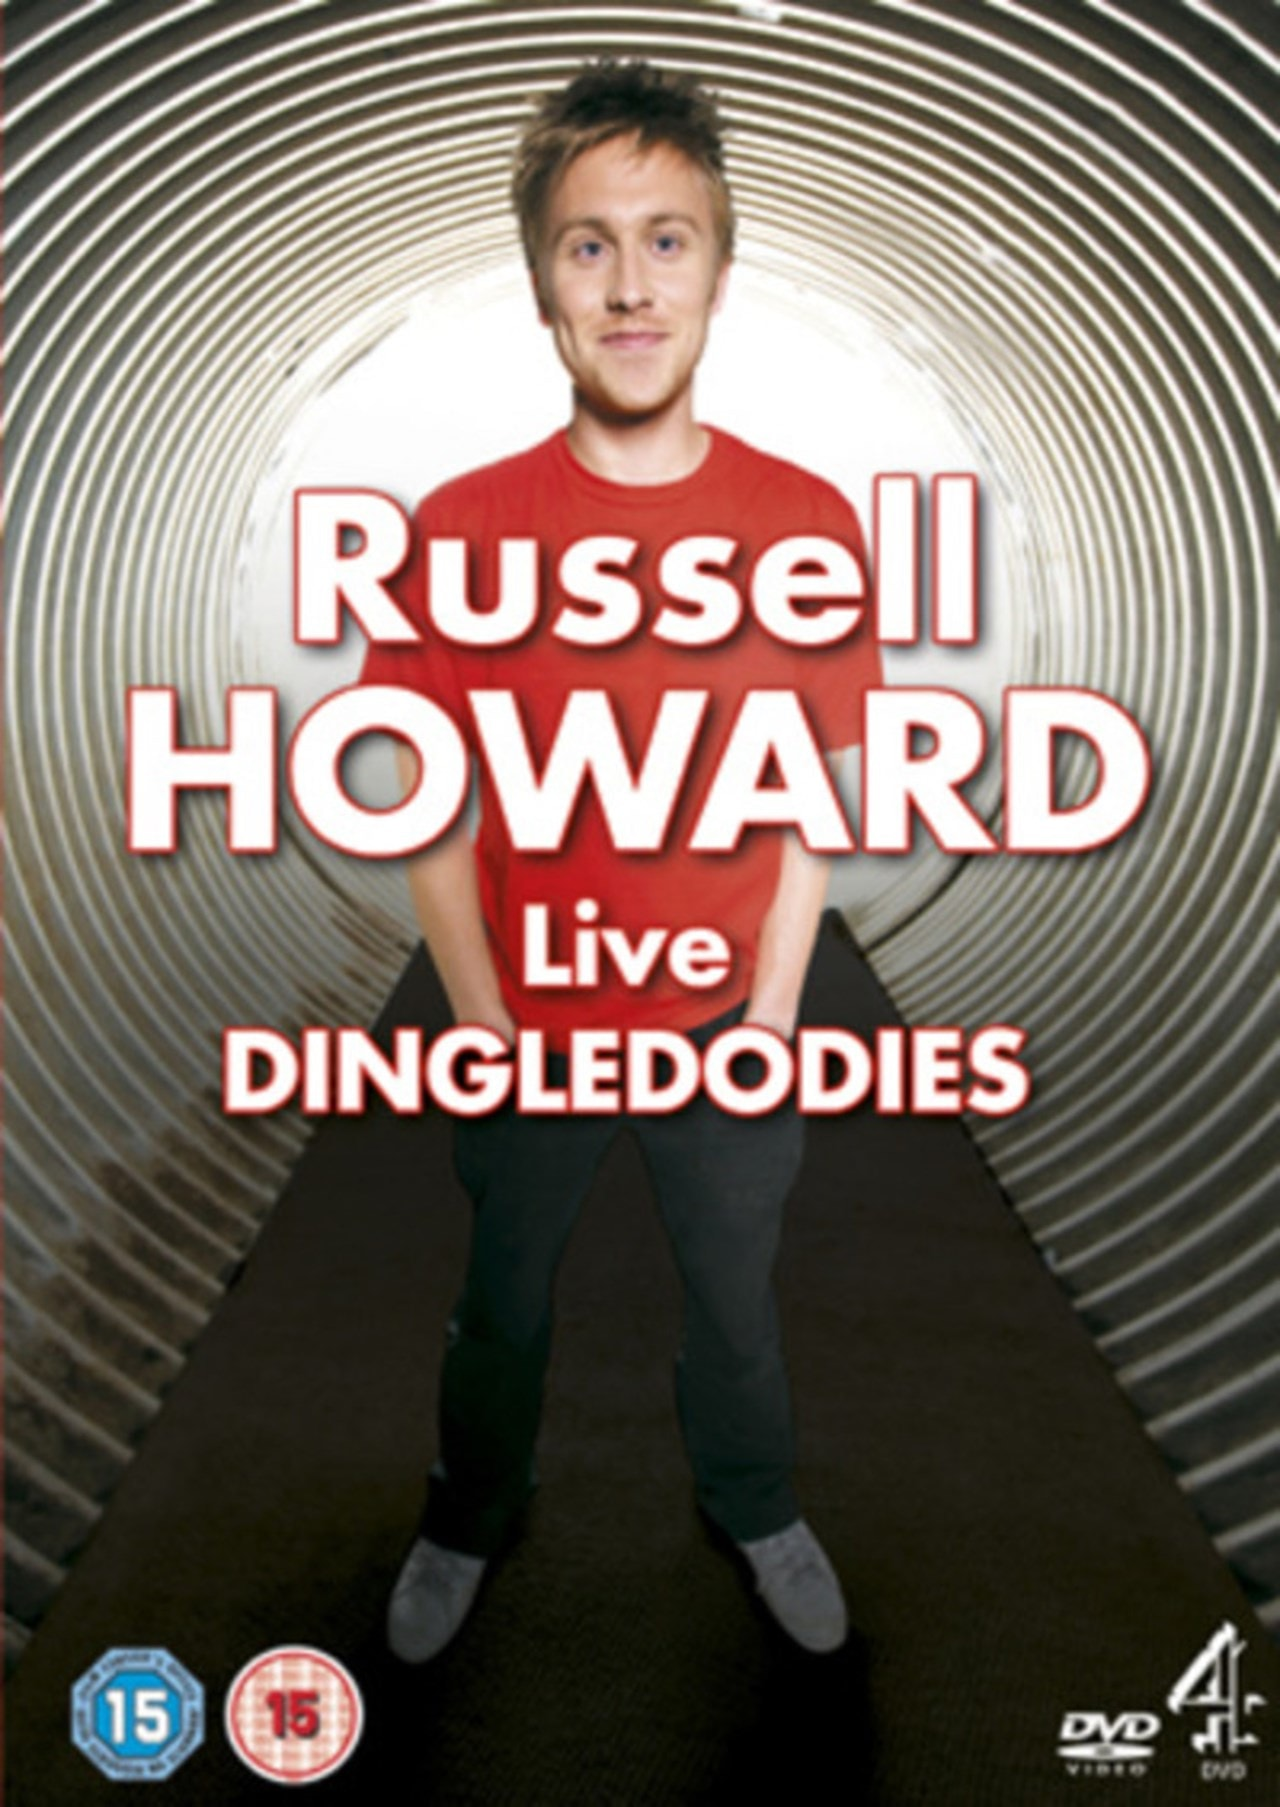 Russell Howard: Live - Dingledodies - 1